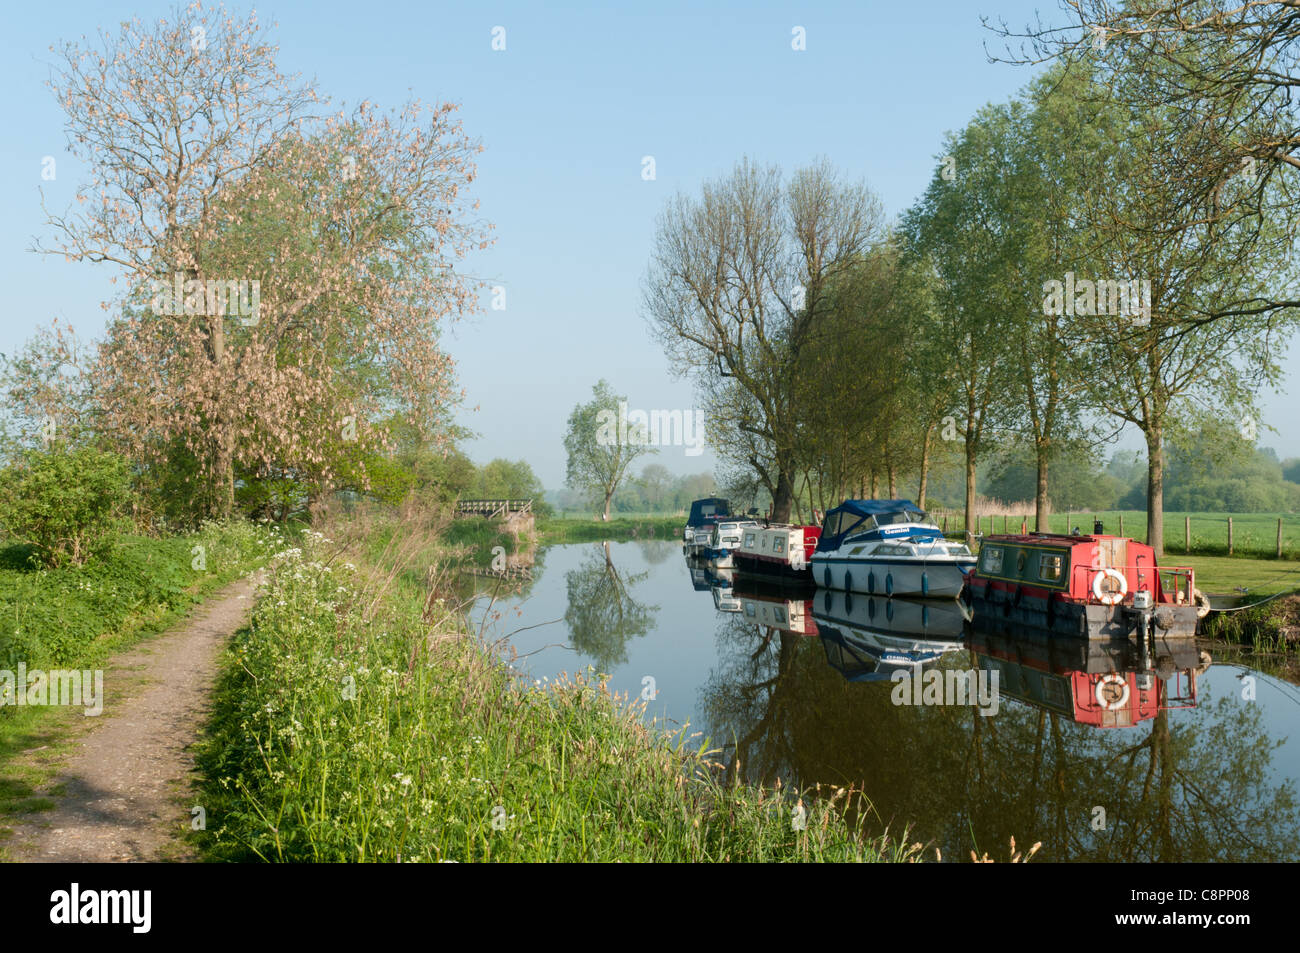 Boats near Hoe Mill Lock on the River Chelmer and Blackwater Navigation. - Stock Image